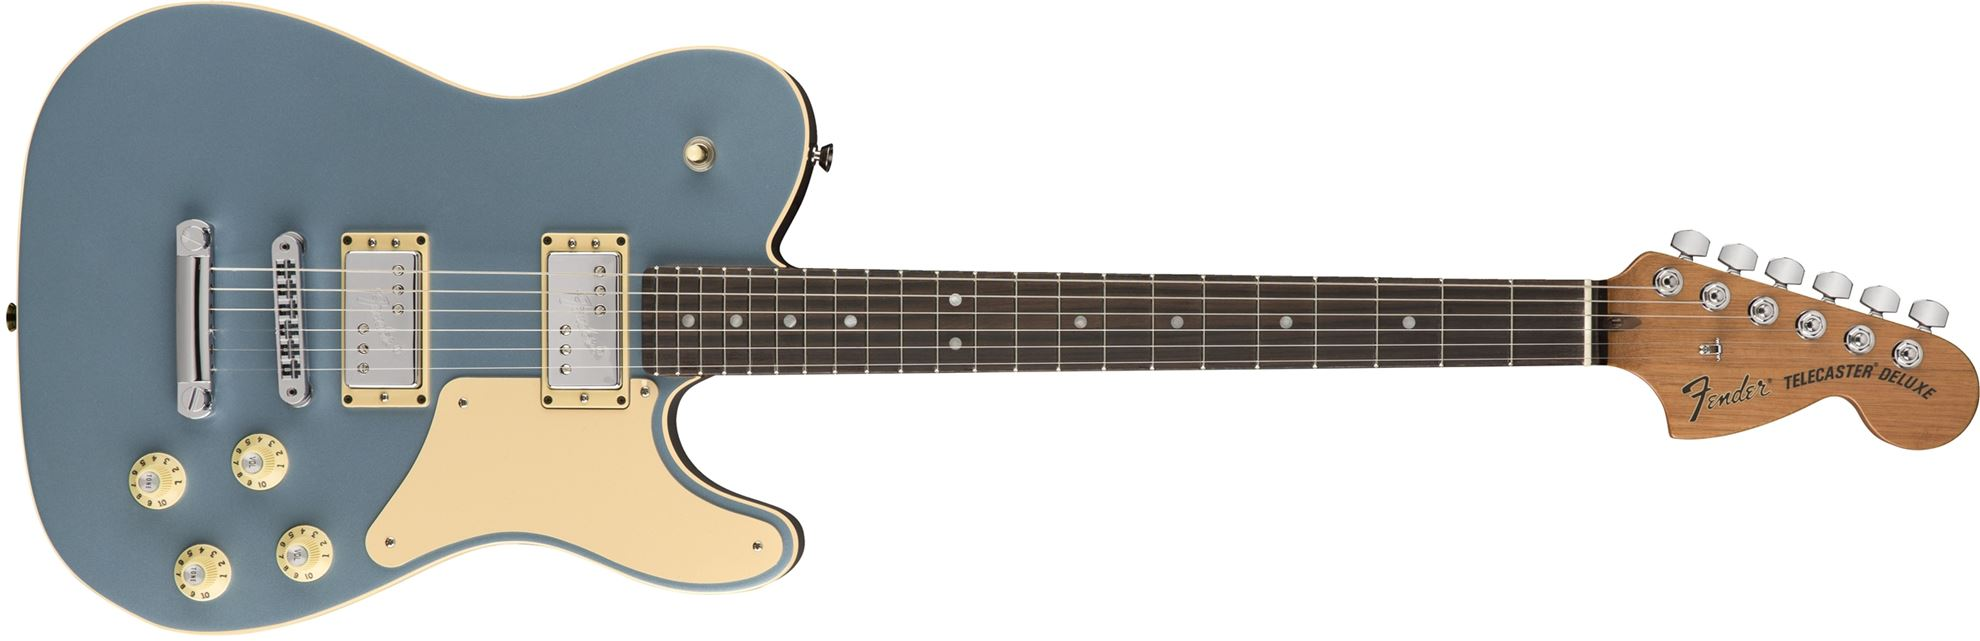 fender parallel universe troublemaker telecaster electric guitar ice blue metallic perth. Black Bedroom Furniture Sets. Home Design Ideas